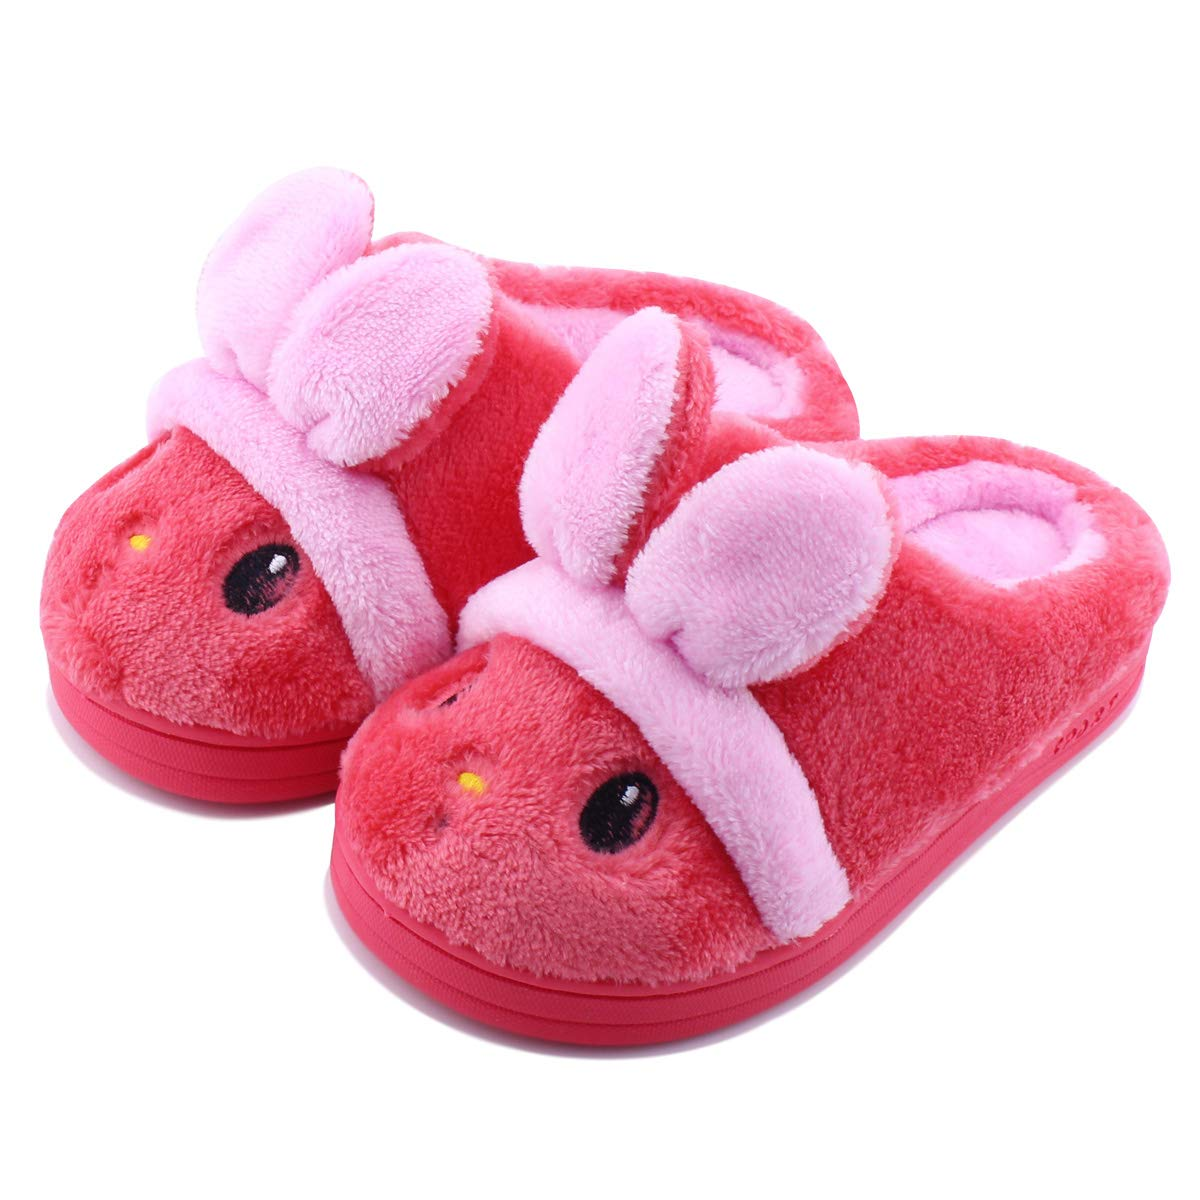 a8bee57b1db Kid Slippers Cute Rabbit Girls Boys Winter Warm Comfort Home Shoes product  image